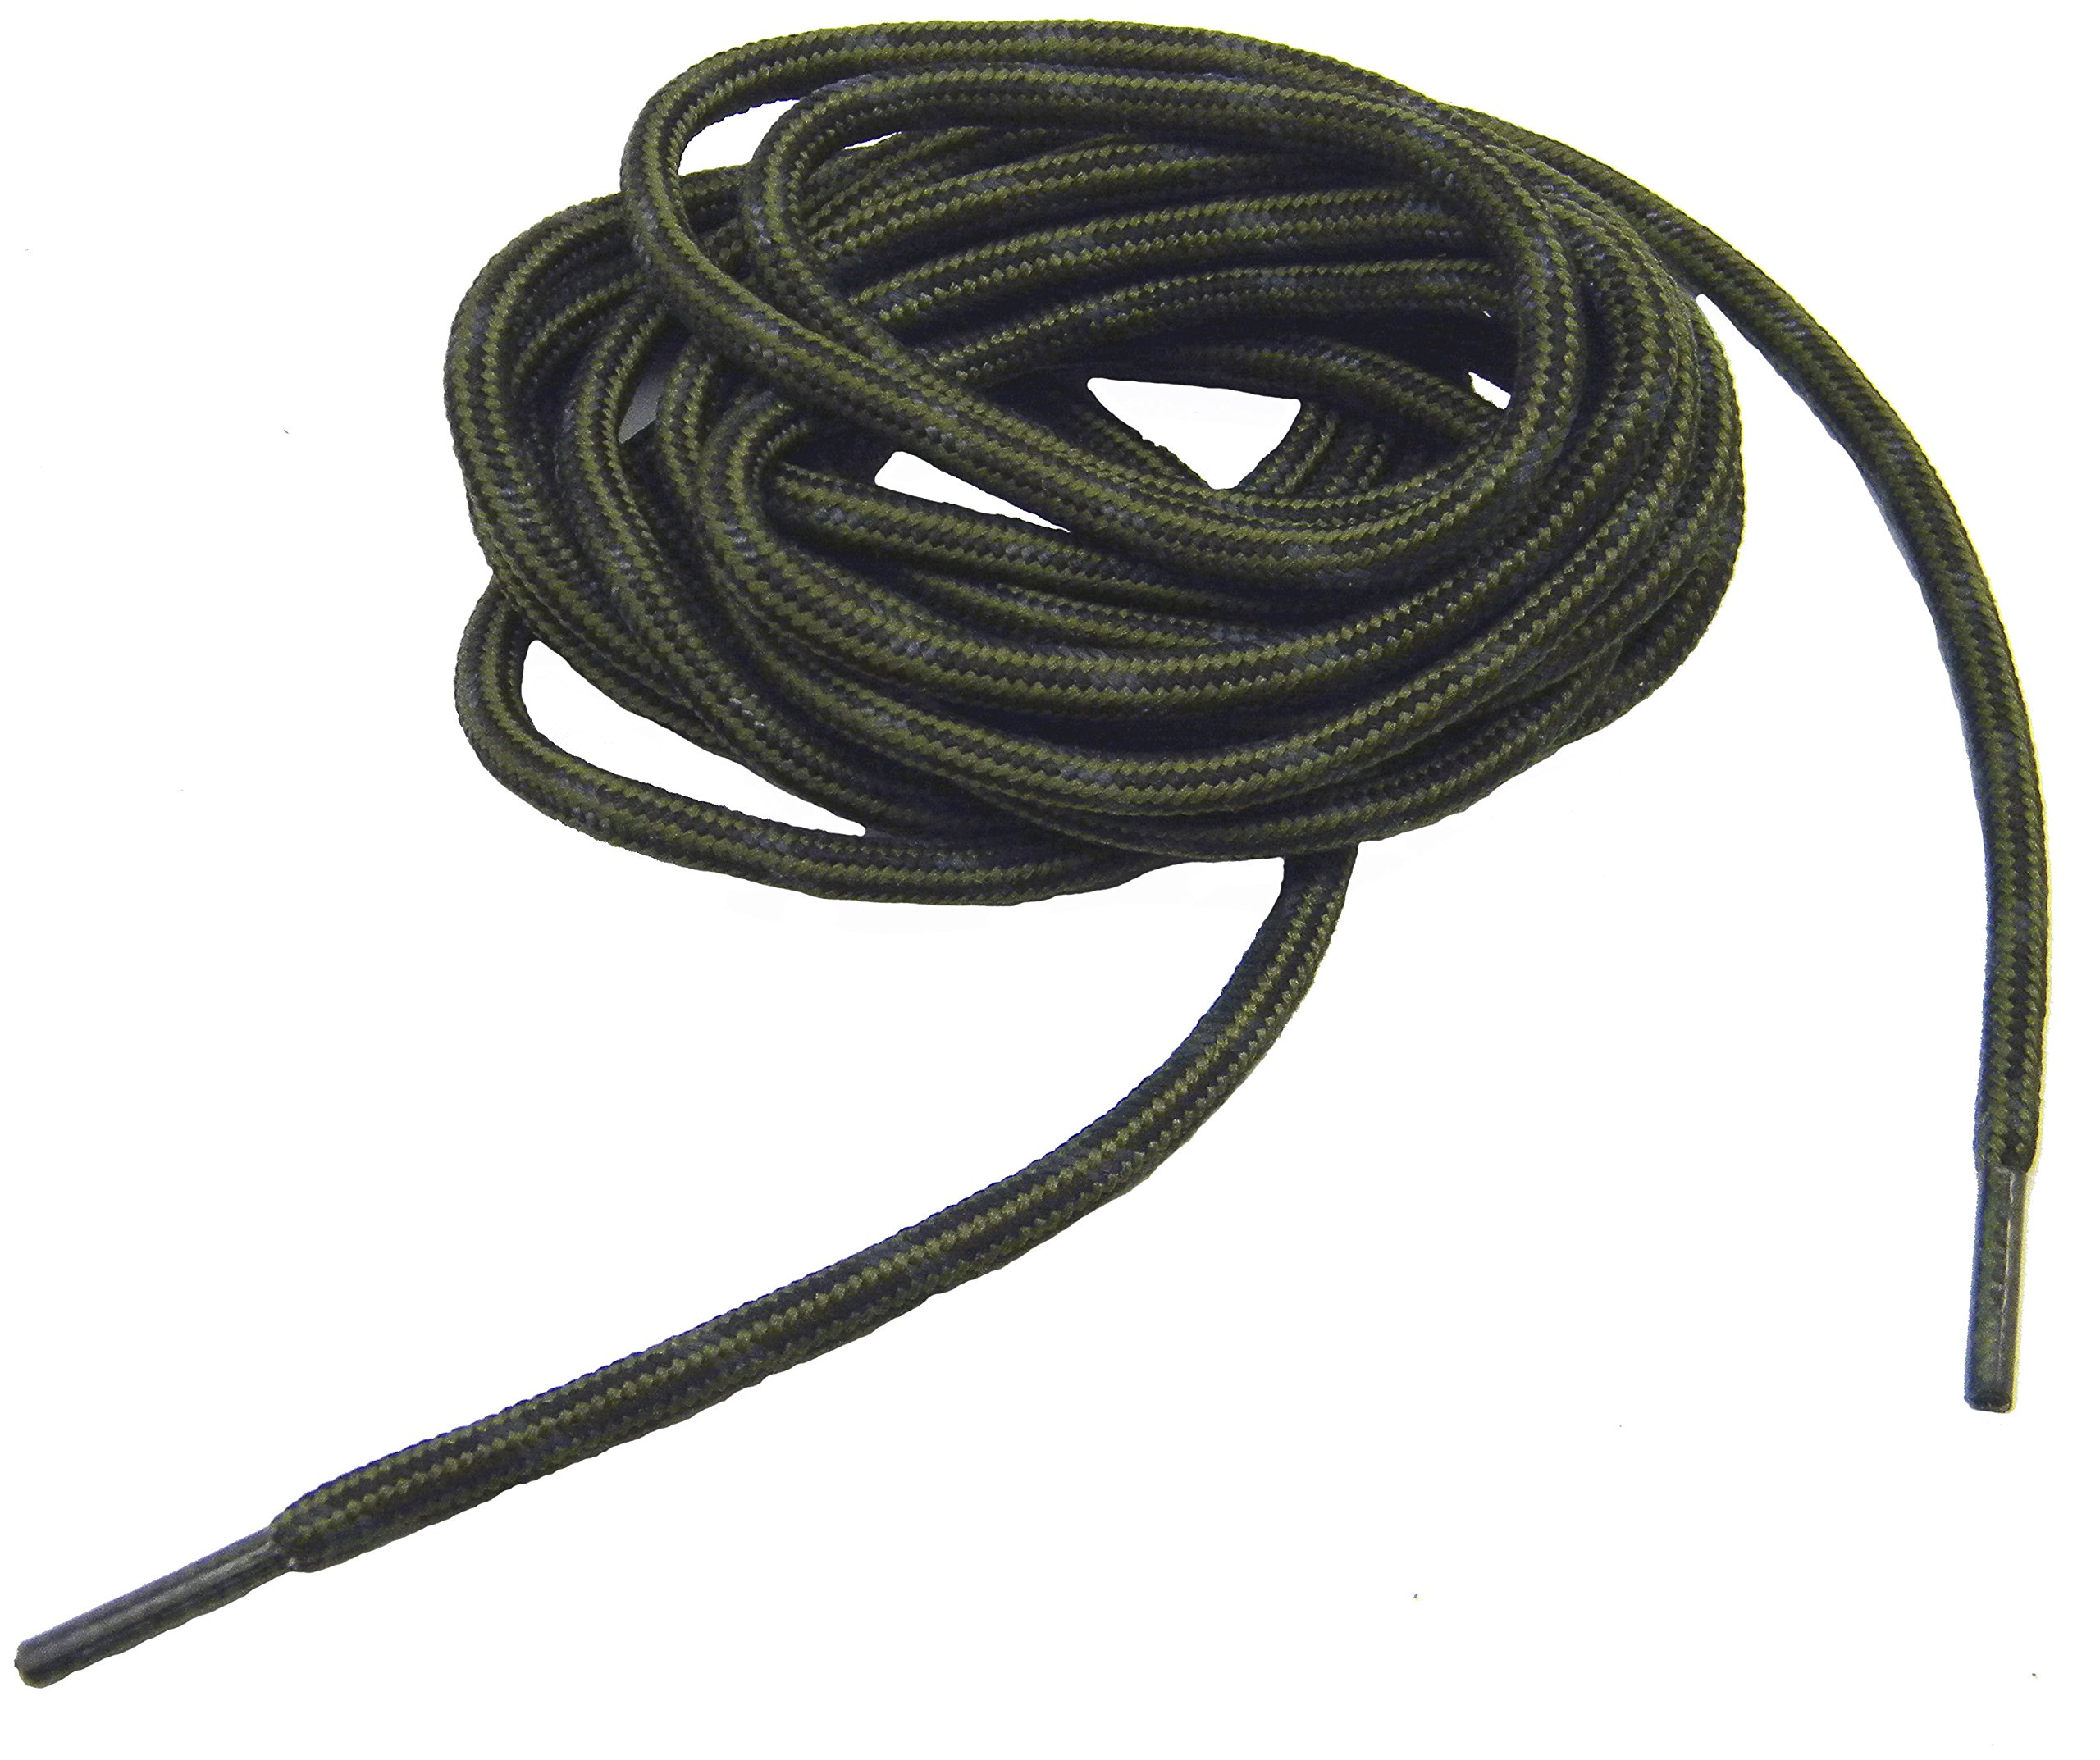 GREATLACES Olive Green w/Black Kevlar (R) proTOUGH(TM) Boot Shoelaces 2 pair pack (72 Inch 183 cm)